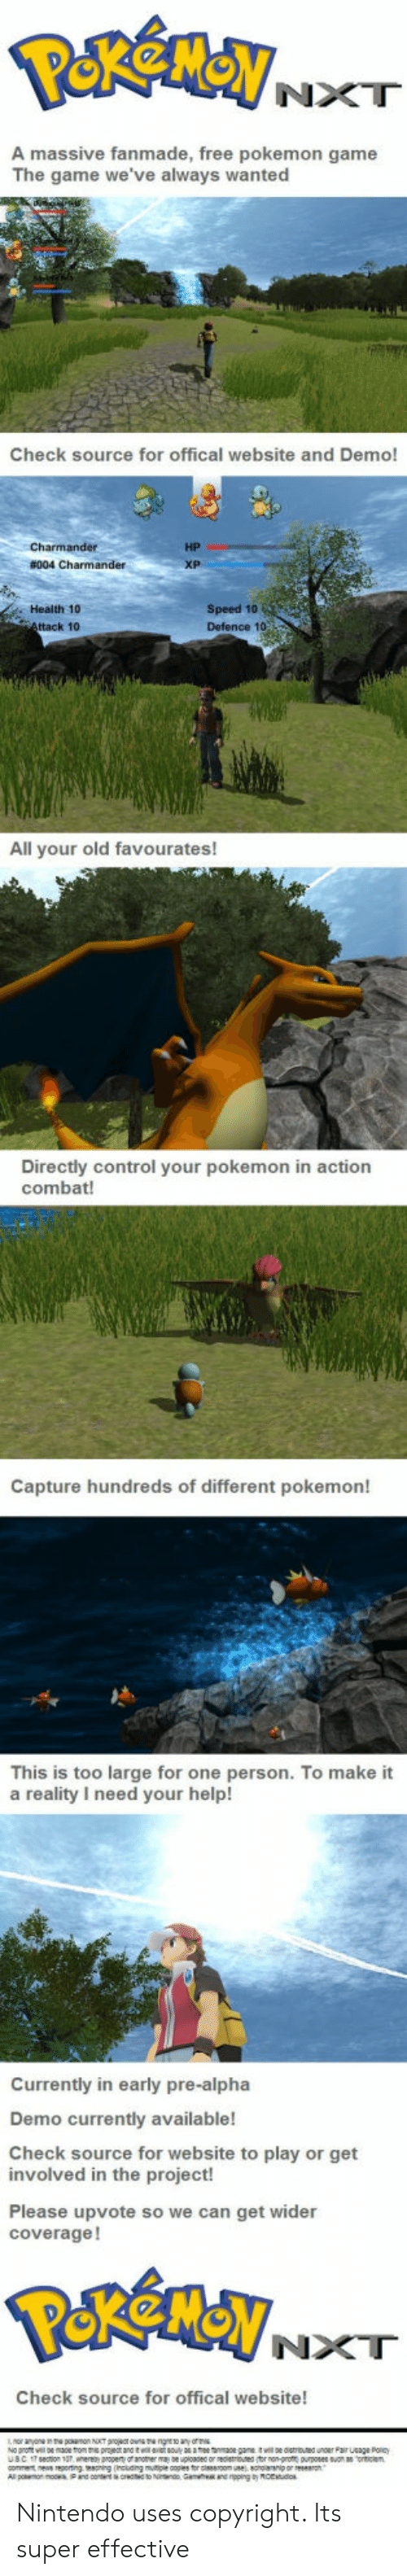 Offical: NXT  A massive fanmade, free pokemon game  The game we've always wanted  Check source for offical website and Demo!  HP  Health 10  ttack 10  Speed 10  Defence 1o  All your old favourates!  Directly control your pokemon in action  combat!  Capture hundreds of different pokemon!  This is too large for one person. To make it  a reality I need your help!  Currently in early pre-alpha  Demo currently available!  Check source for website to play or get  involved in the project!  Please upvote so we can get wider  coverage!  NXT  Check source for offical website! Nintendo uses copyright. Its super effective